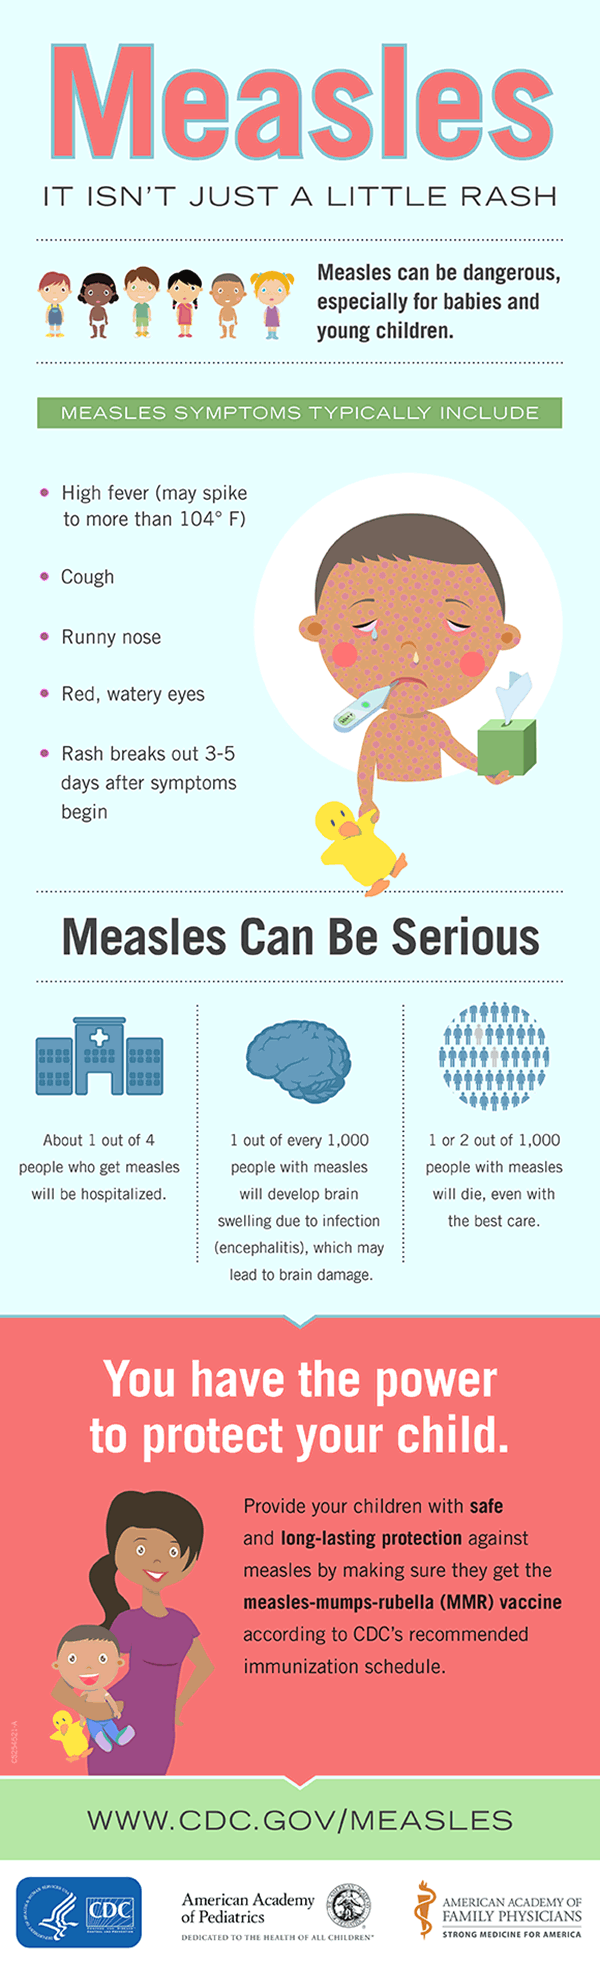 CDC measles-infographic describing how serious it is and that it's not just a little rash